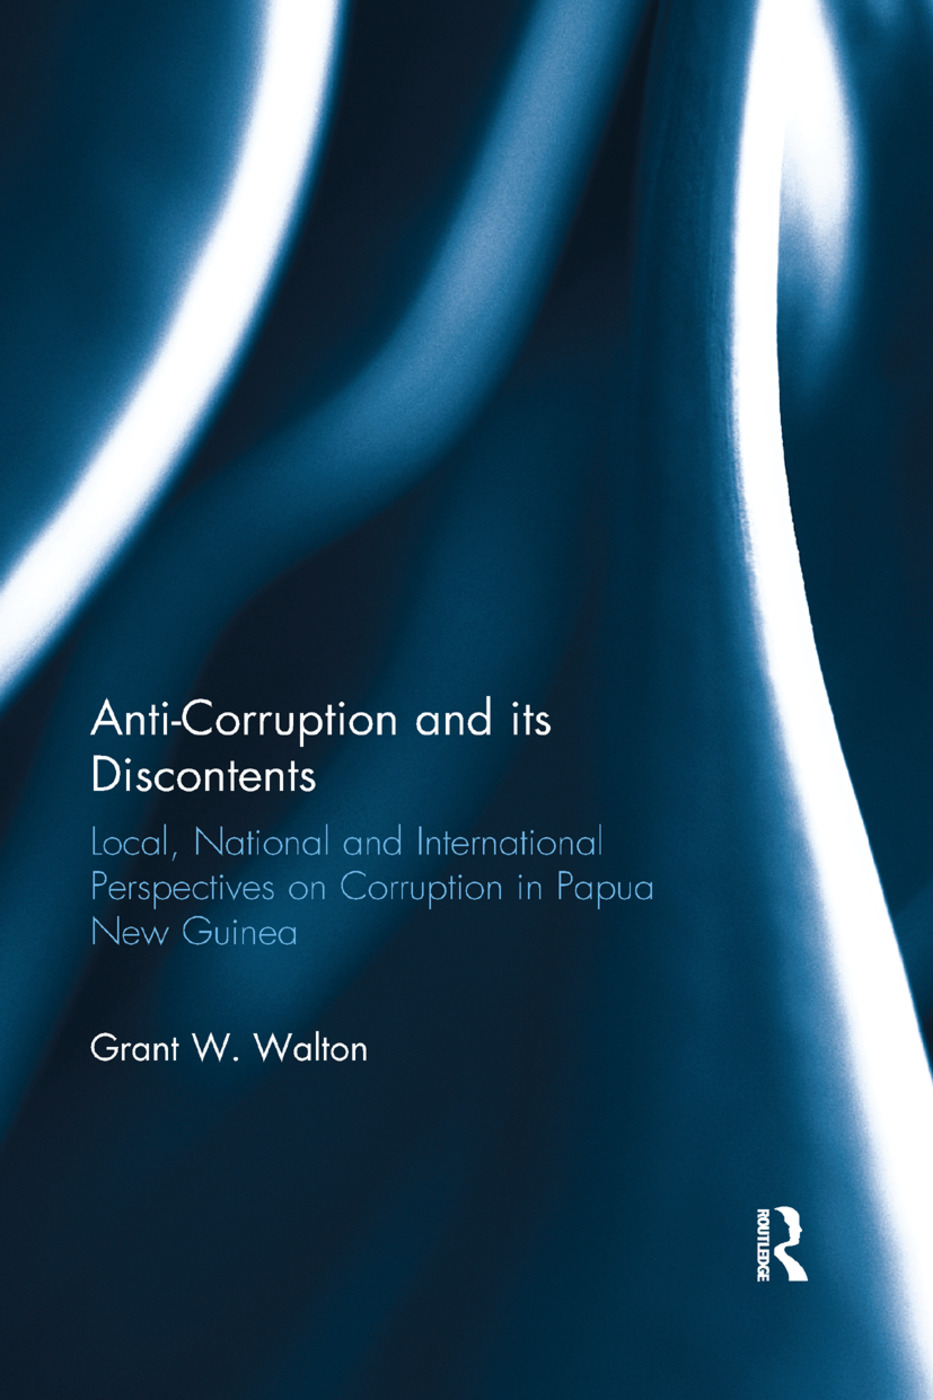 Anti-Corruption and its Discontents: Local, National and International Perspectives on Corruption in Papua New Guinea book cover